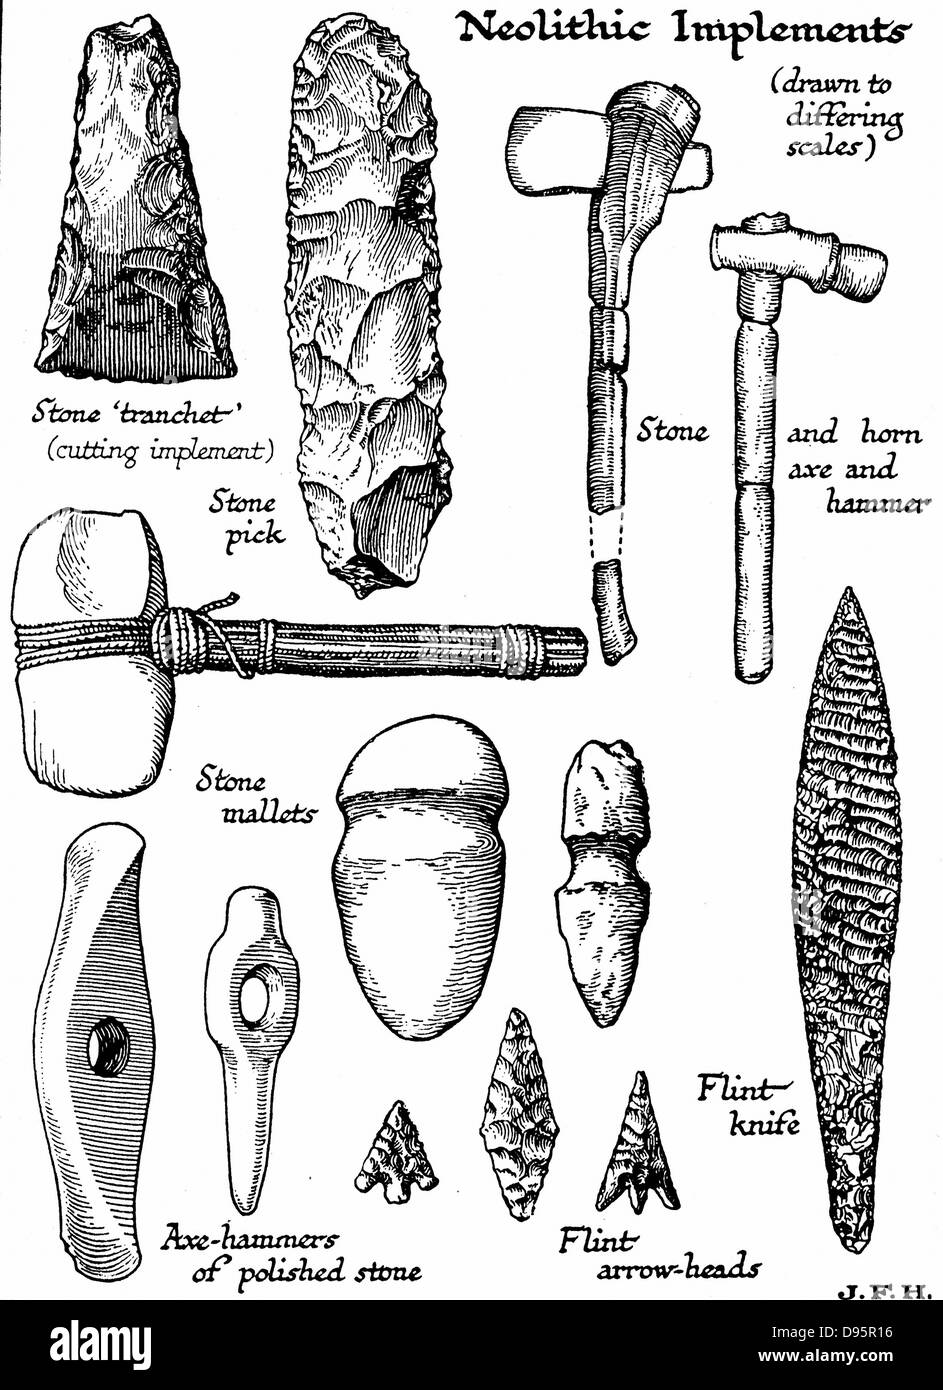 Neolithic implements of stone, flint and horn. Woodcut c1890 - Stock Image